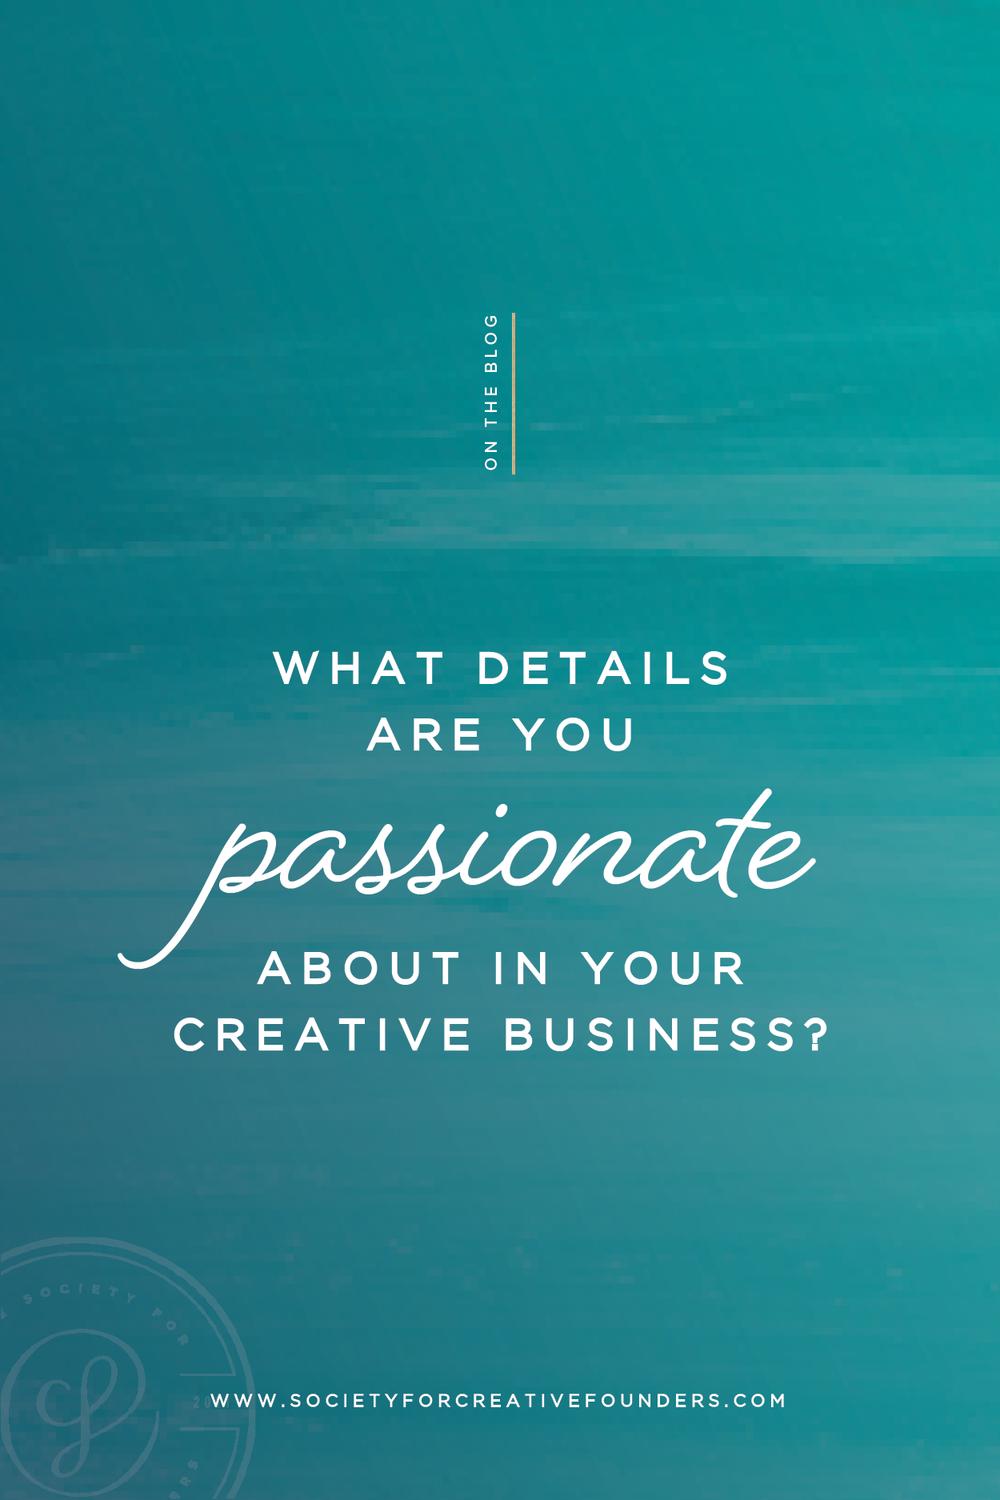 What Details are you Passionate about in your Creative Business